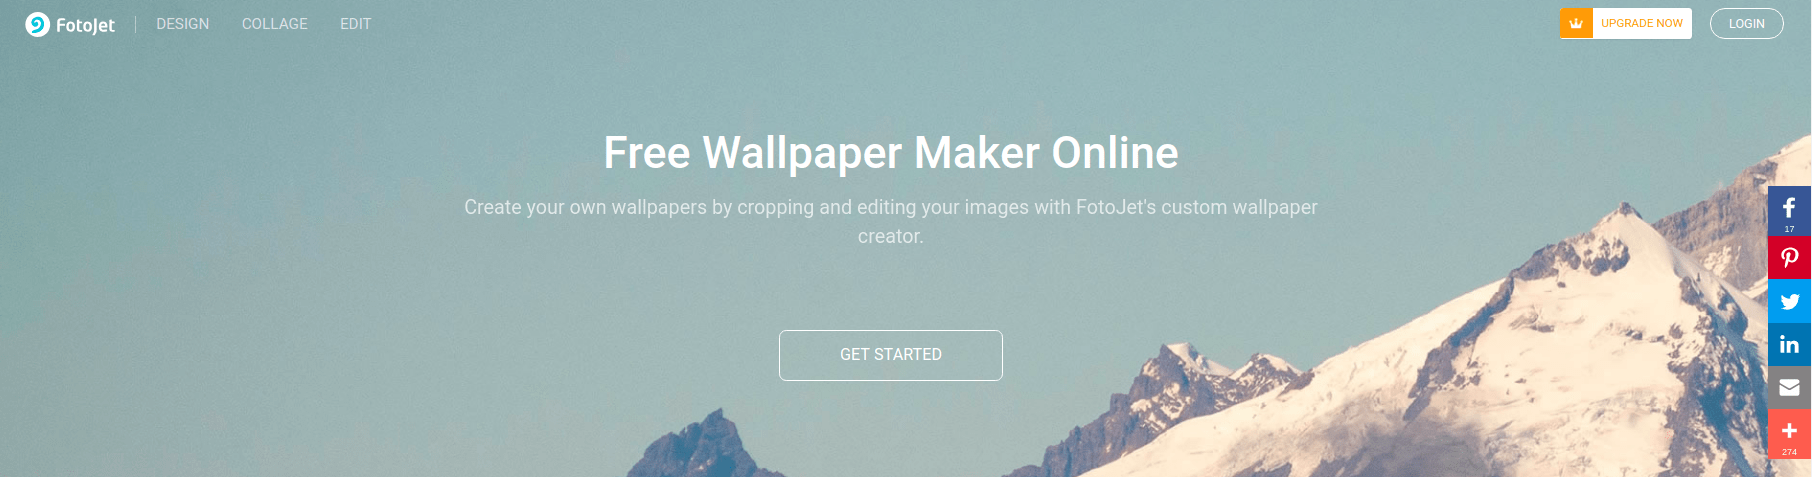 Different ways to create a wallpaper